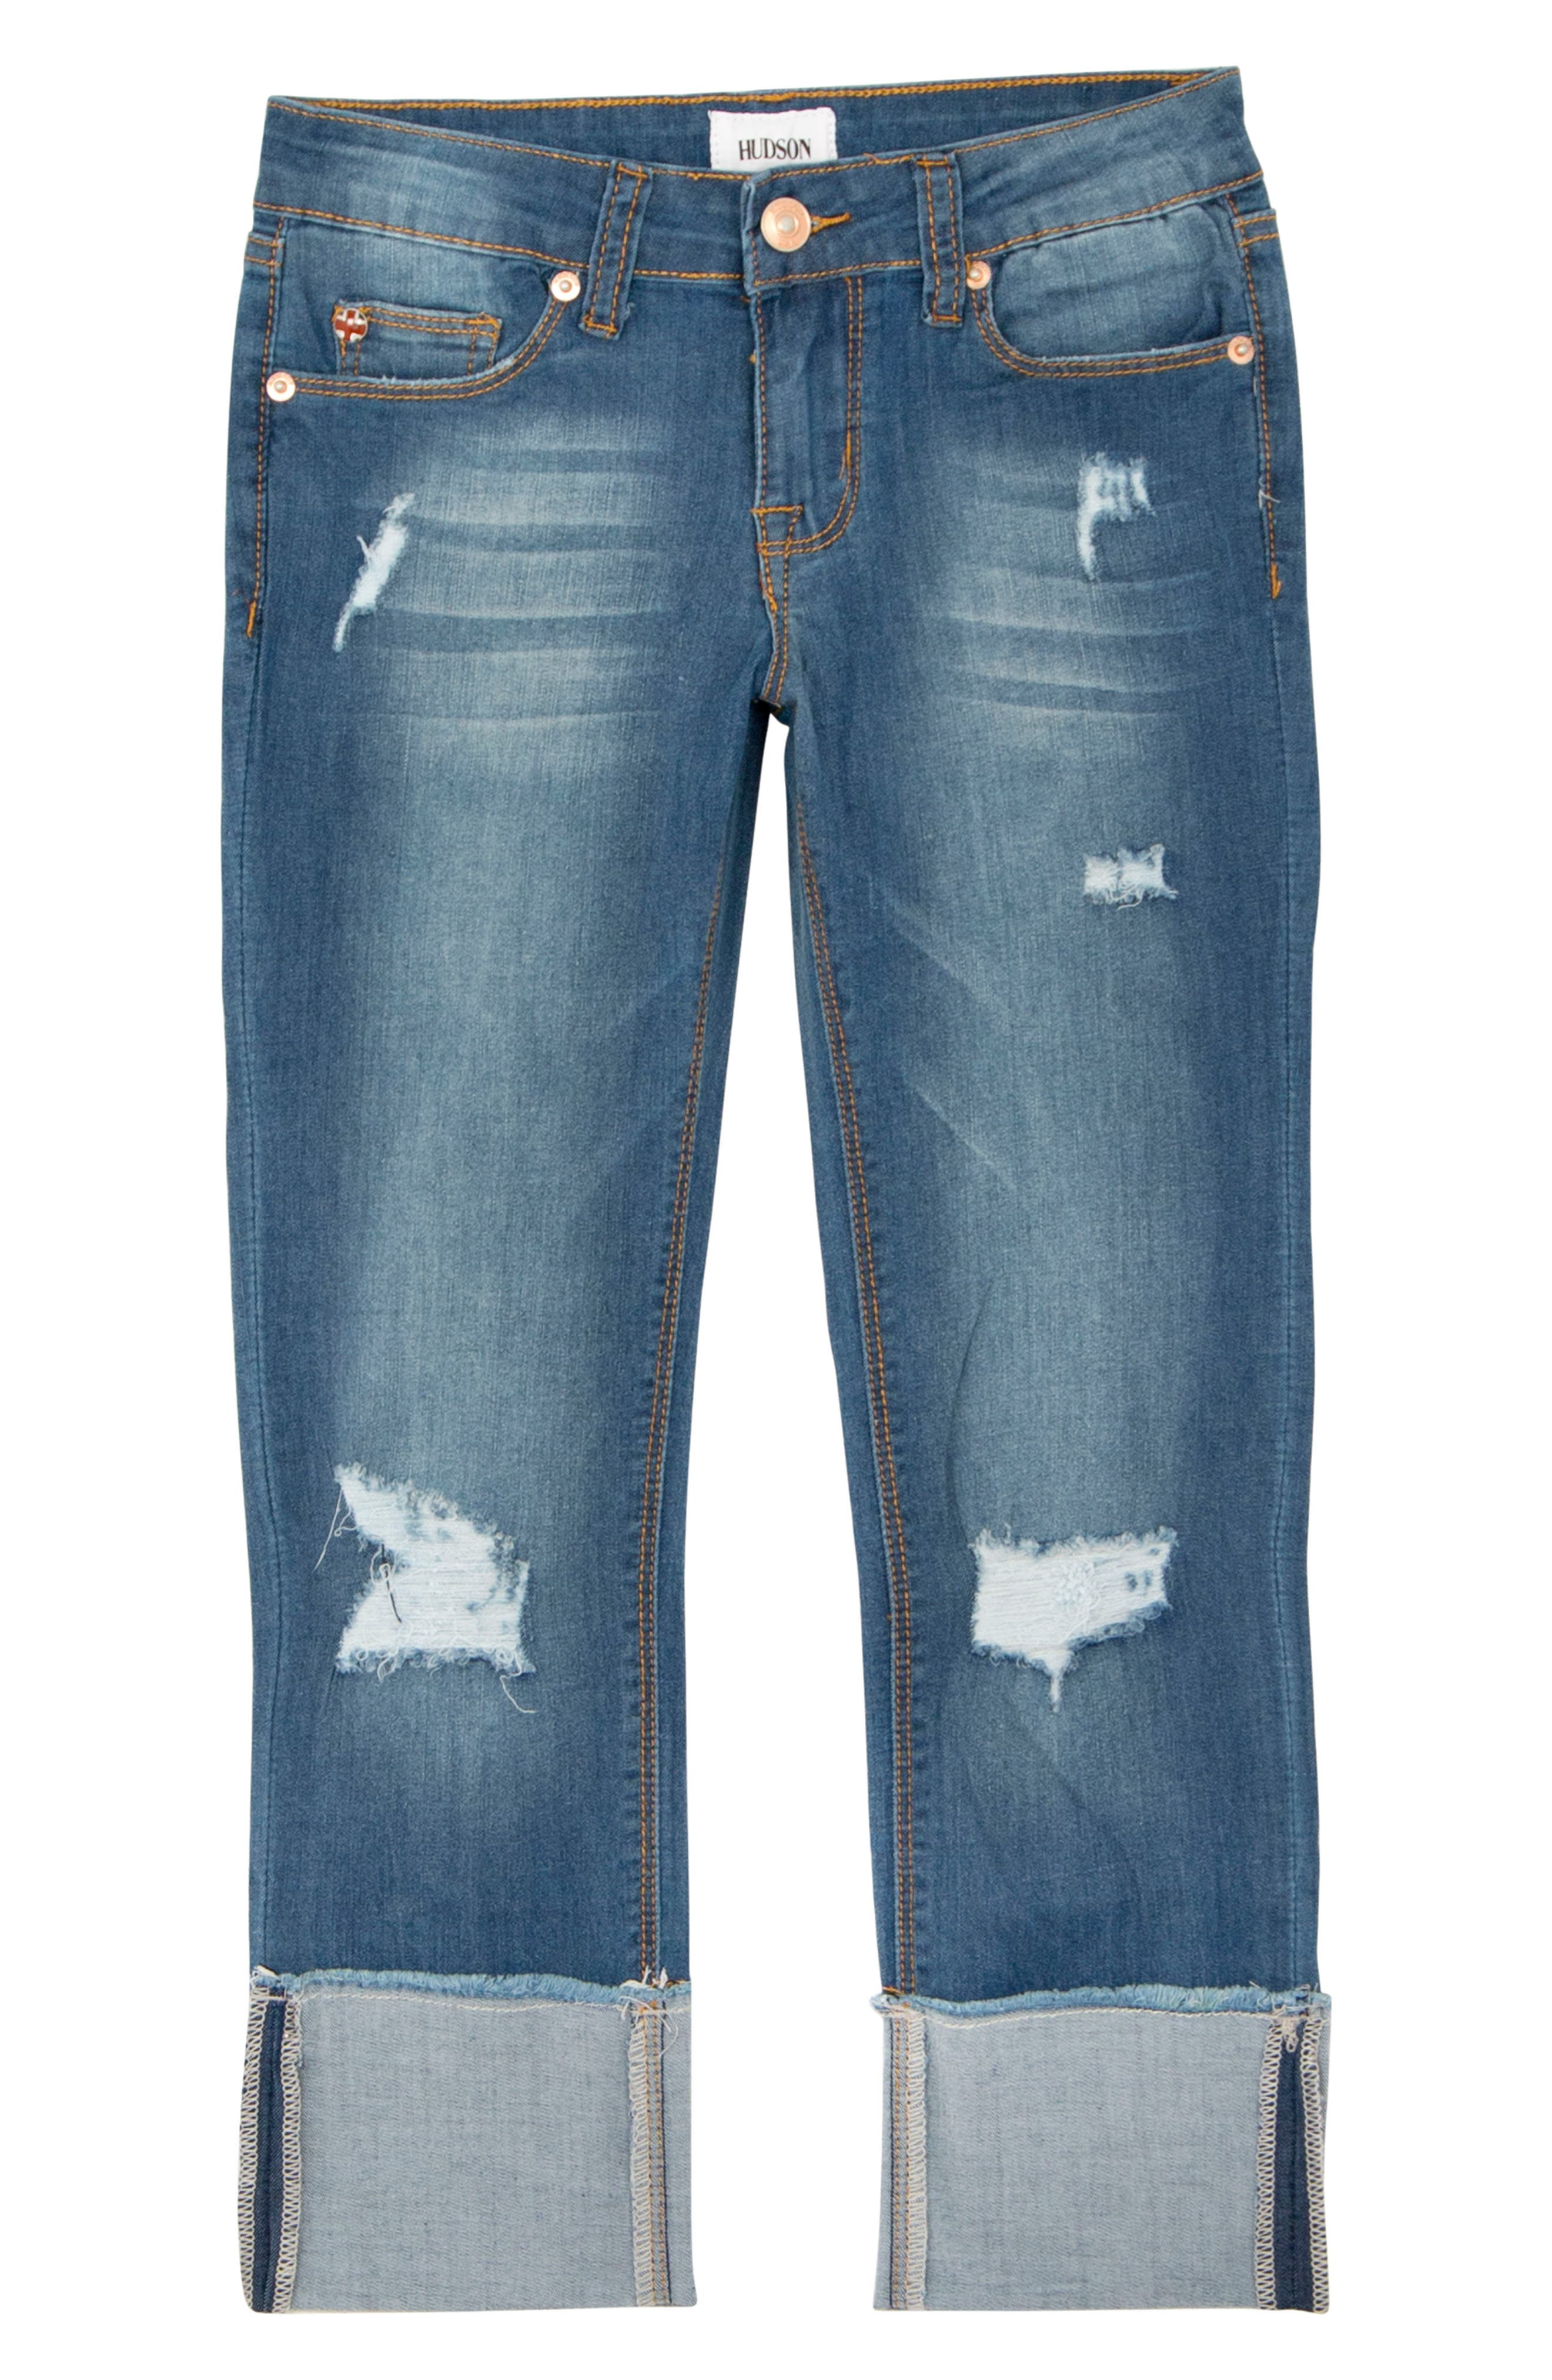 Jessa Crop Skinny Jeans,                             Main thumbnail 1, color,                             Jetty Blue